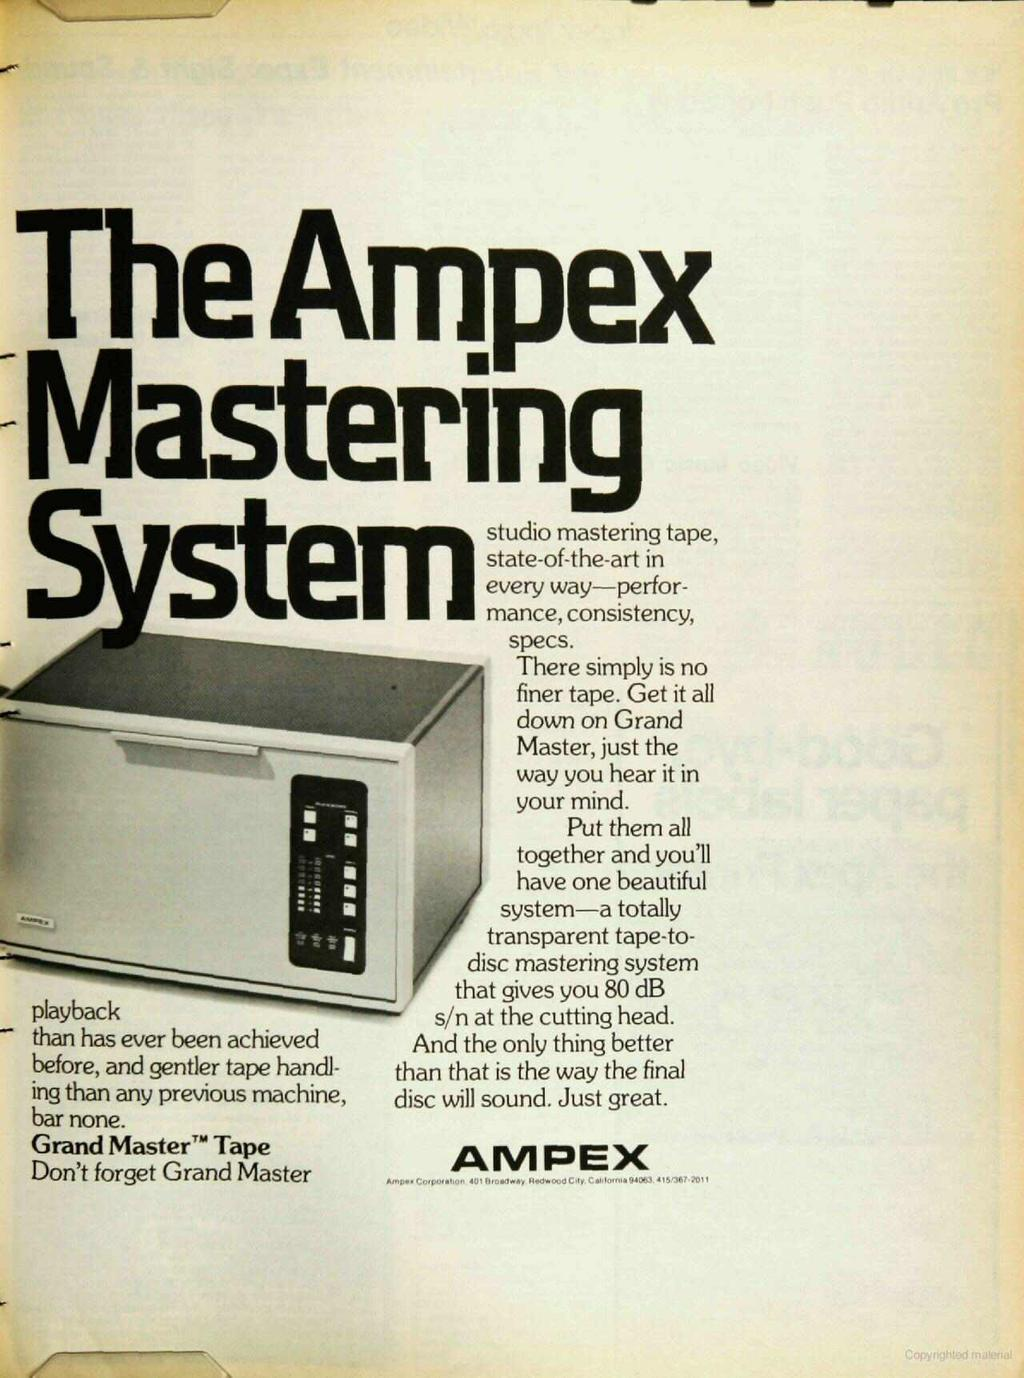 The Ampex Mastering ave S stem playback than has ever been achieved before, and gentler tape handling than any previous machine, bar none.